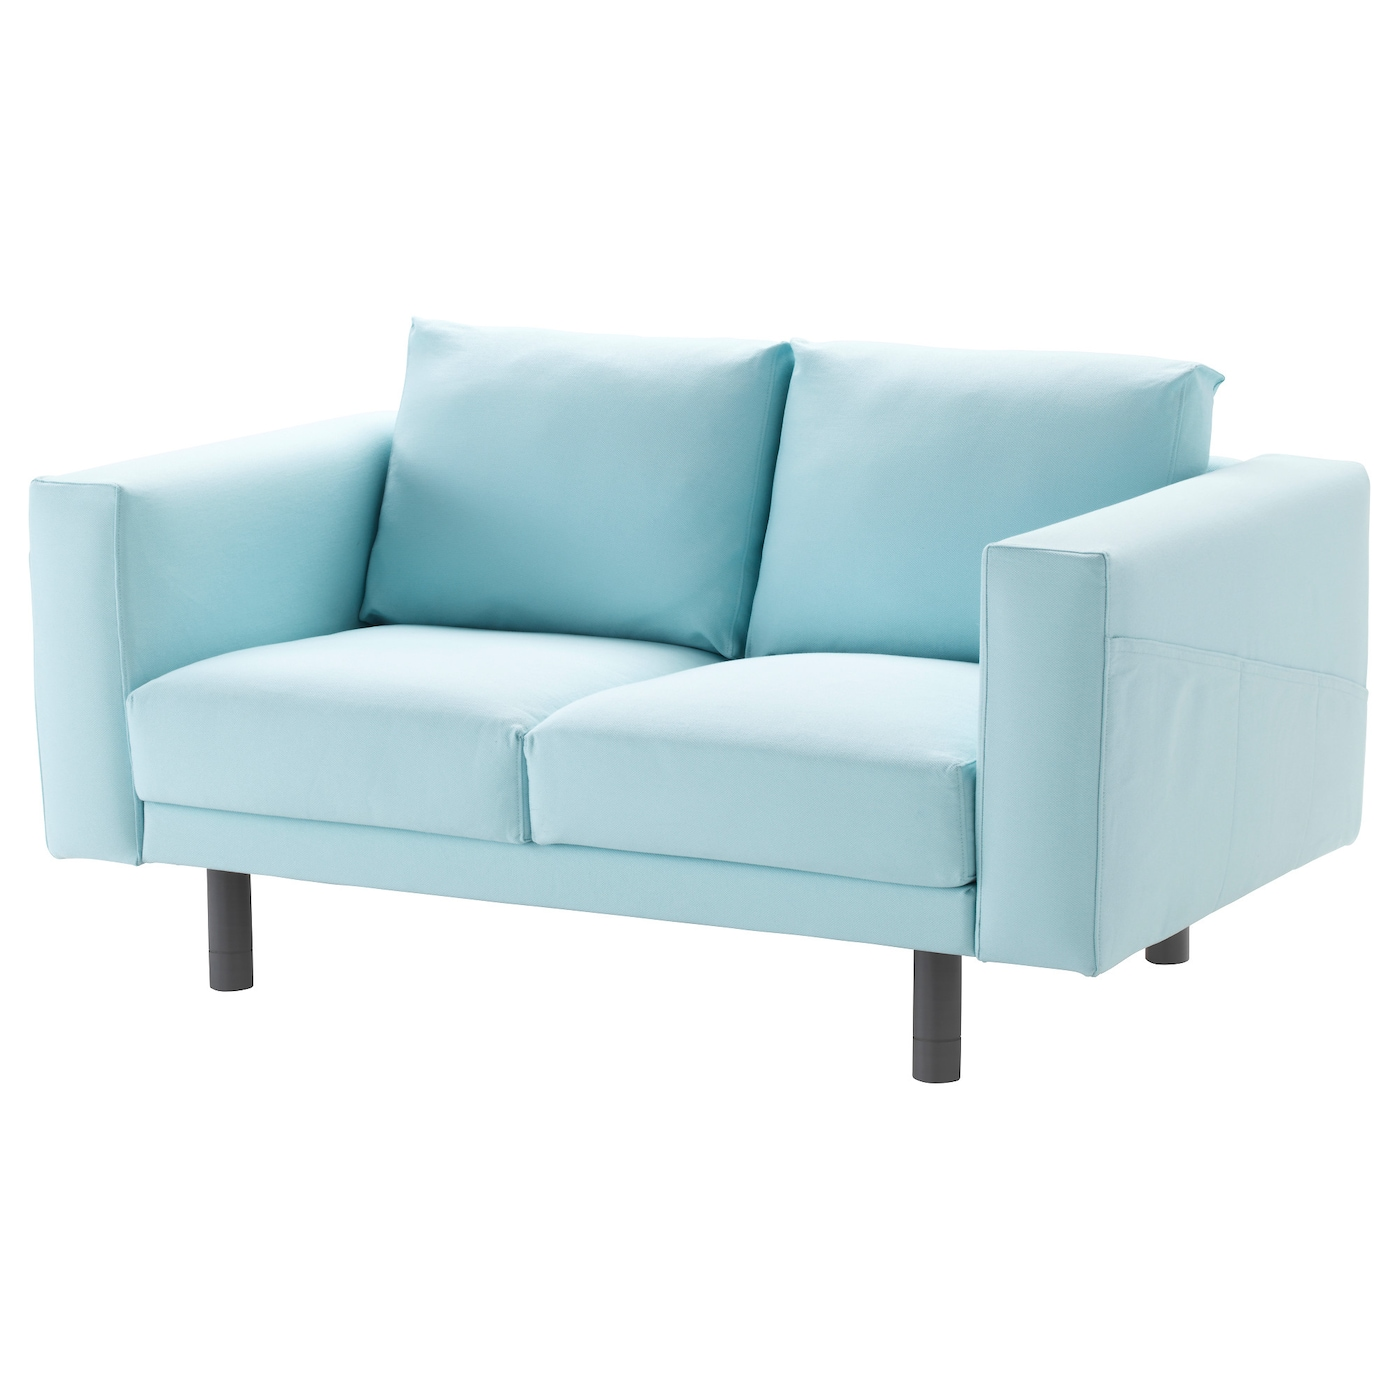 Norsborg two seat sofa gr sbo light blue grey ikea for Blue grey sofa